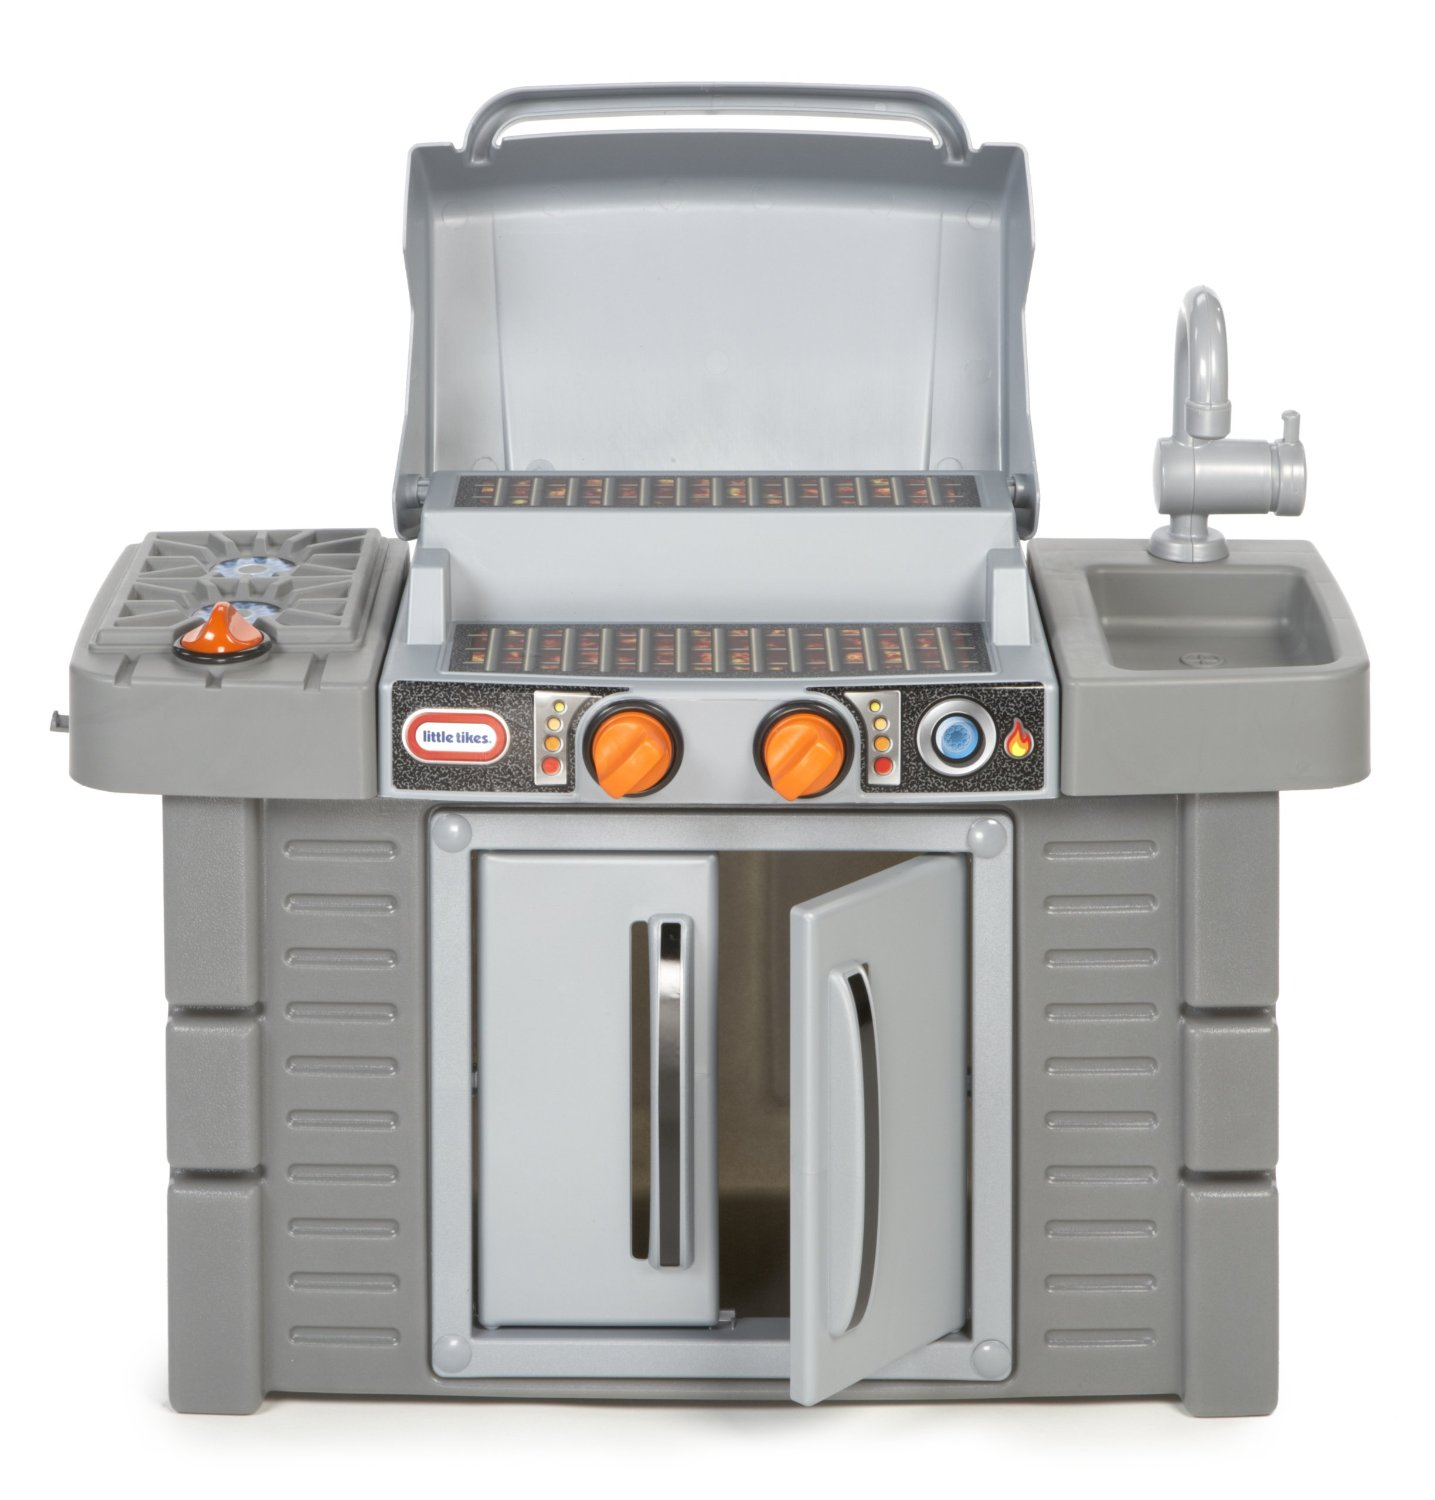 Little Tikes Cook 'N Grow BBQ Grill Review : The Best Option?